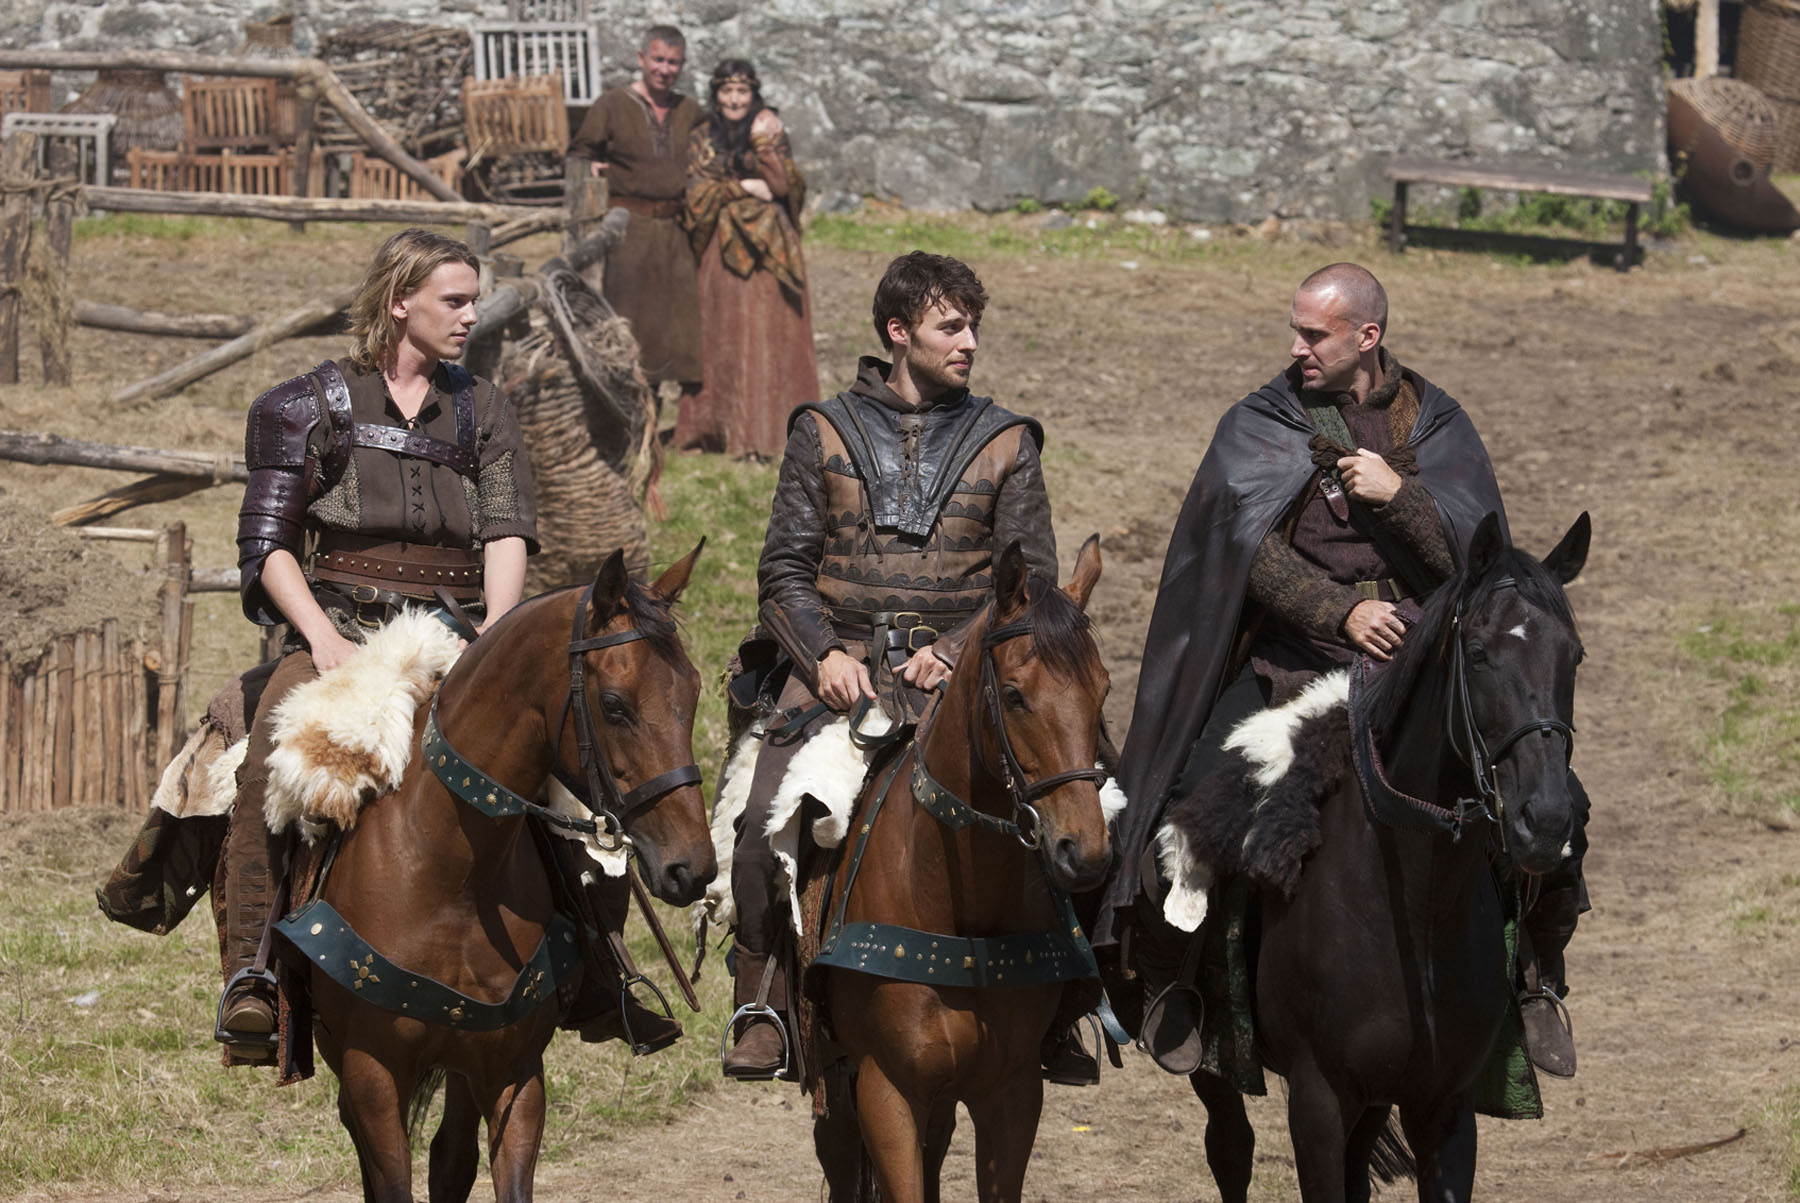 Camelot: A Starz Original - new images - Medieval Archives